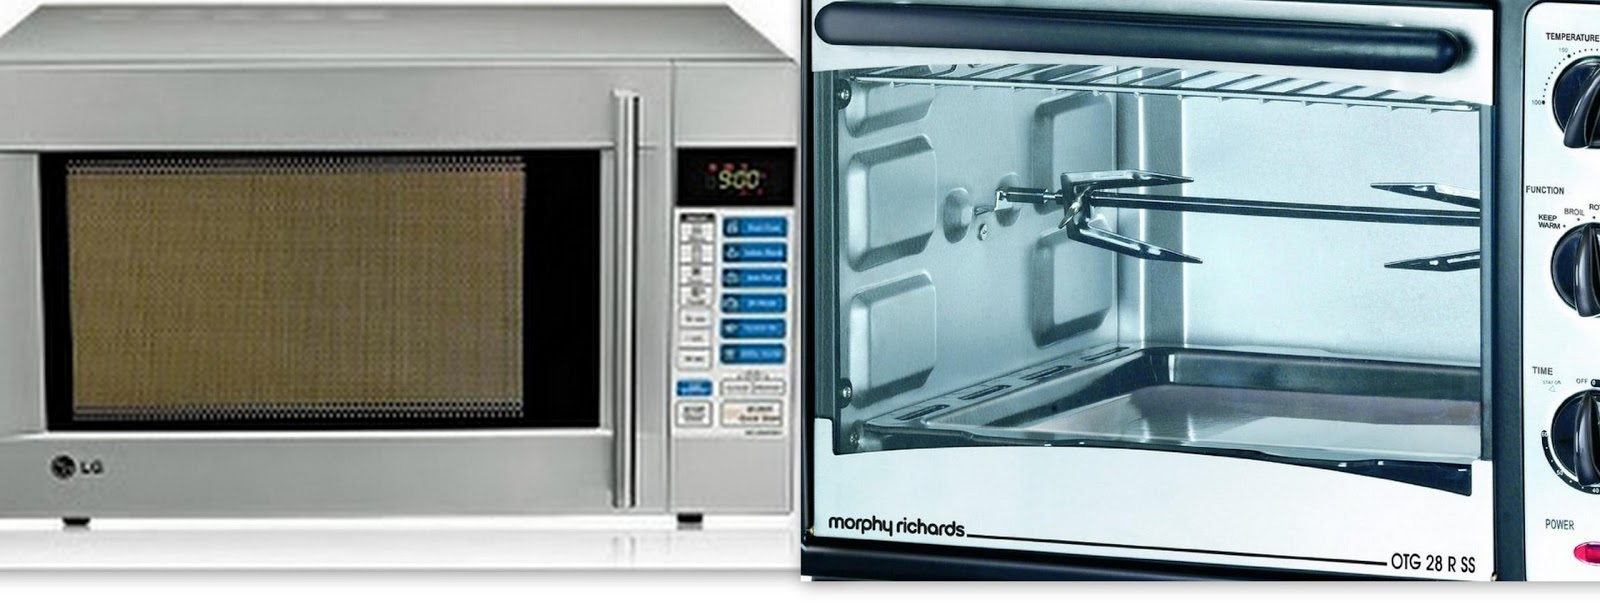 Cakes & More: Compare A Convection Microwave & An Oven Toaster ...